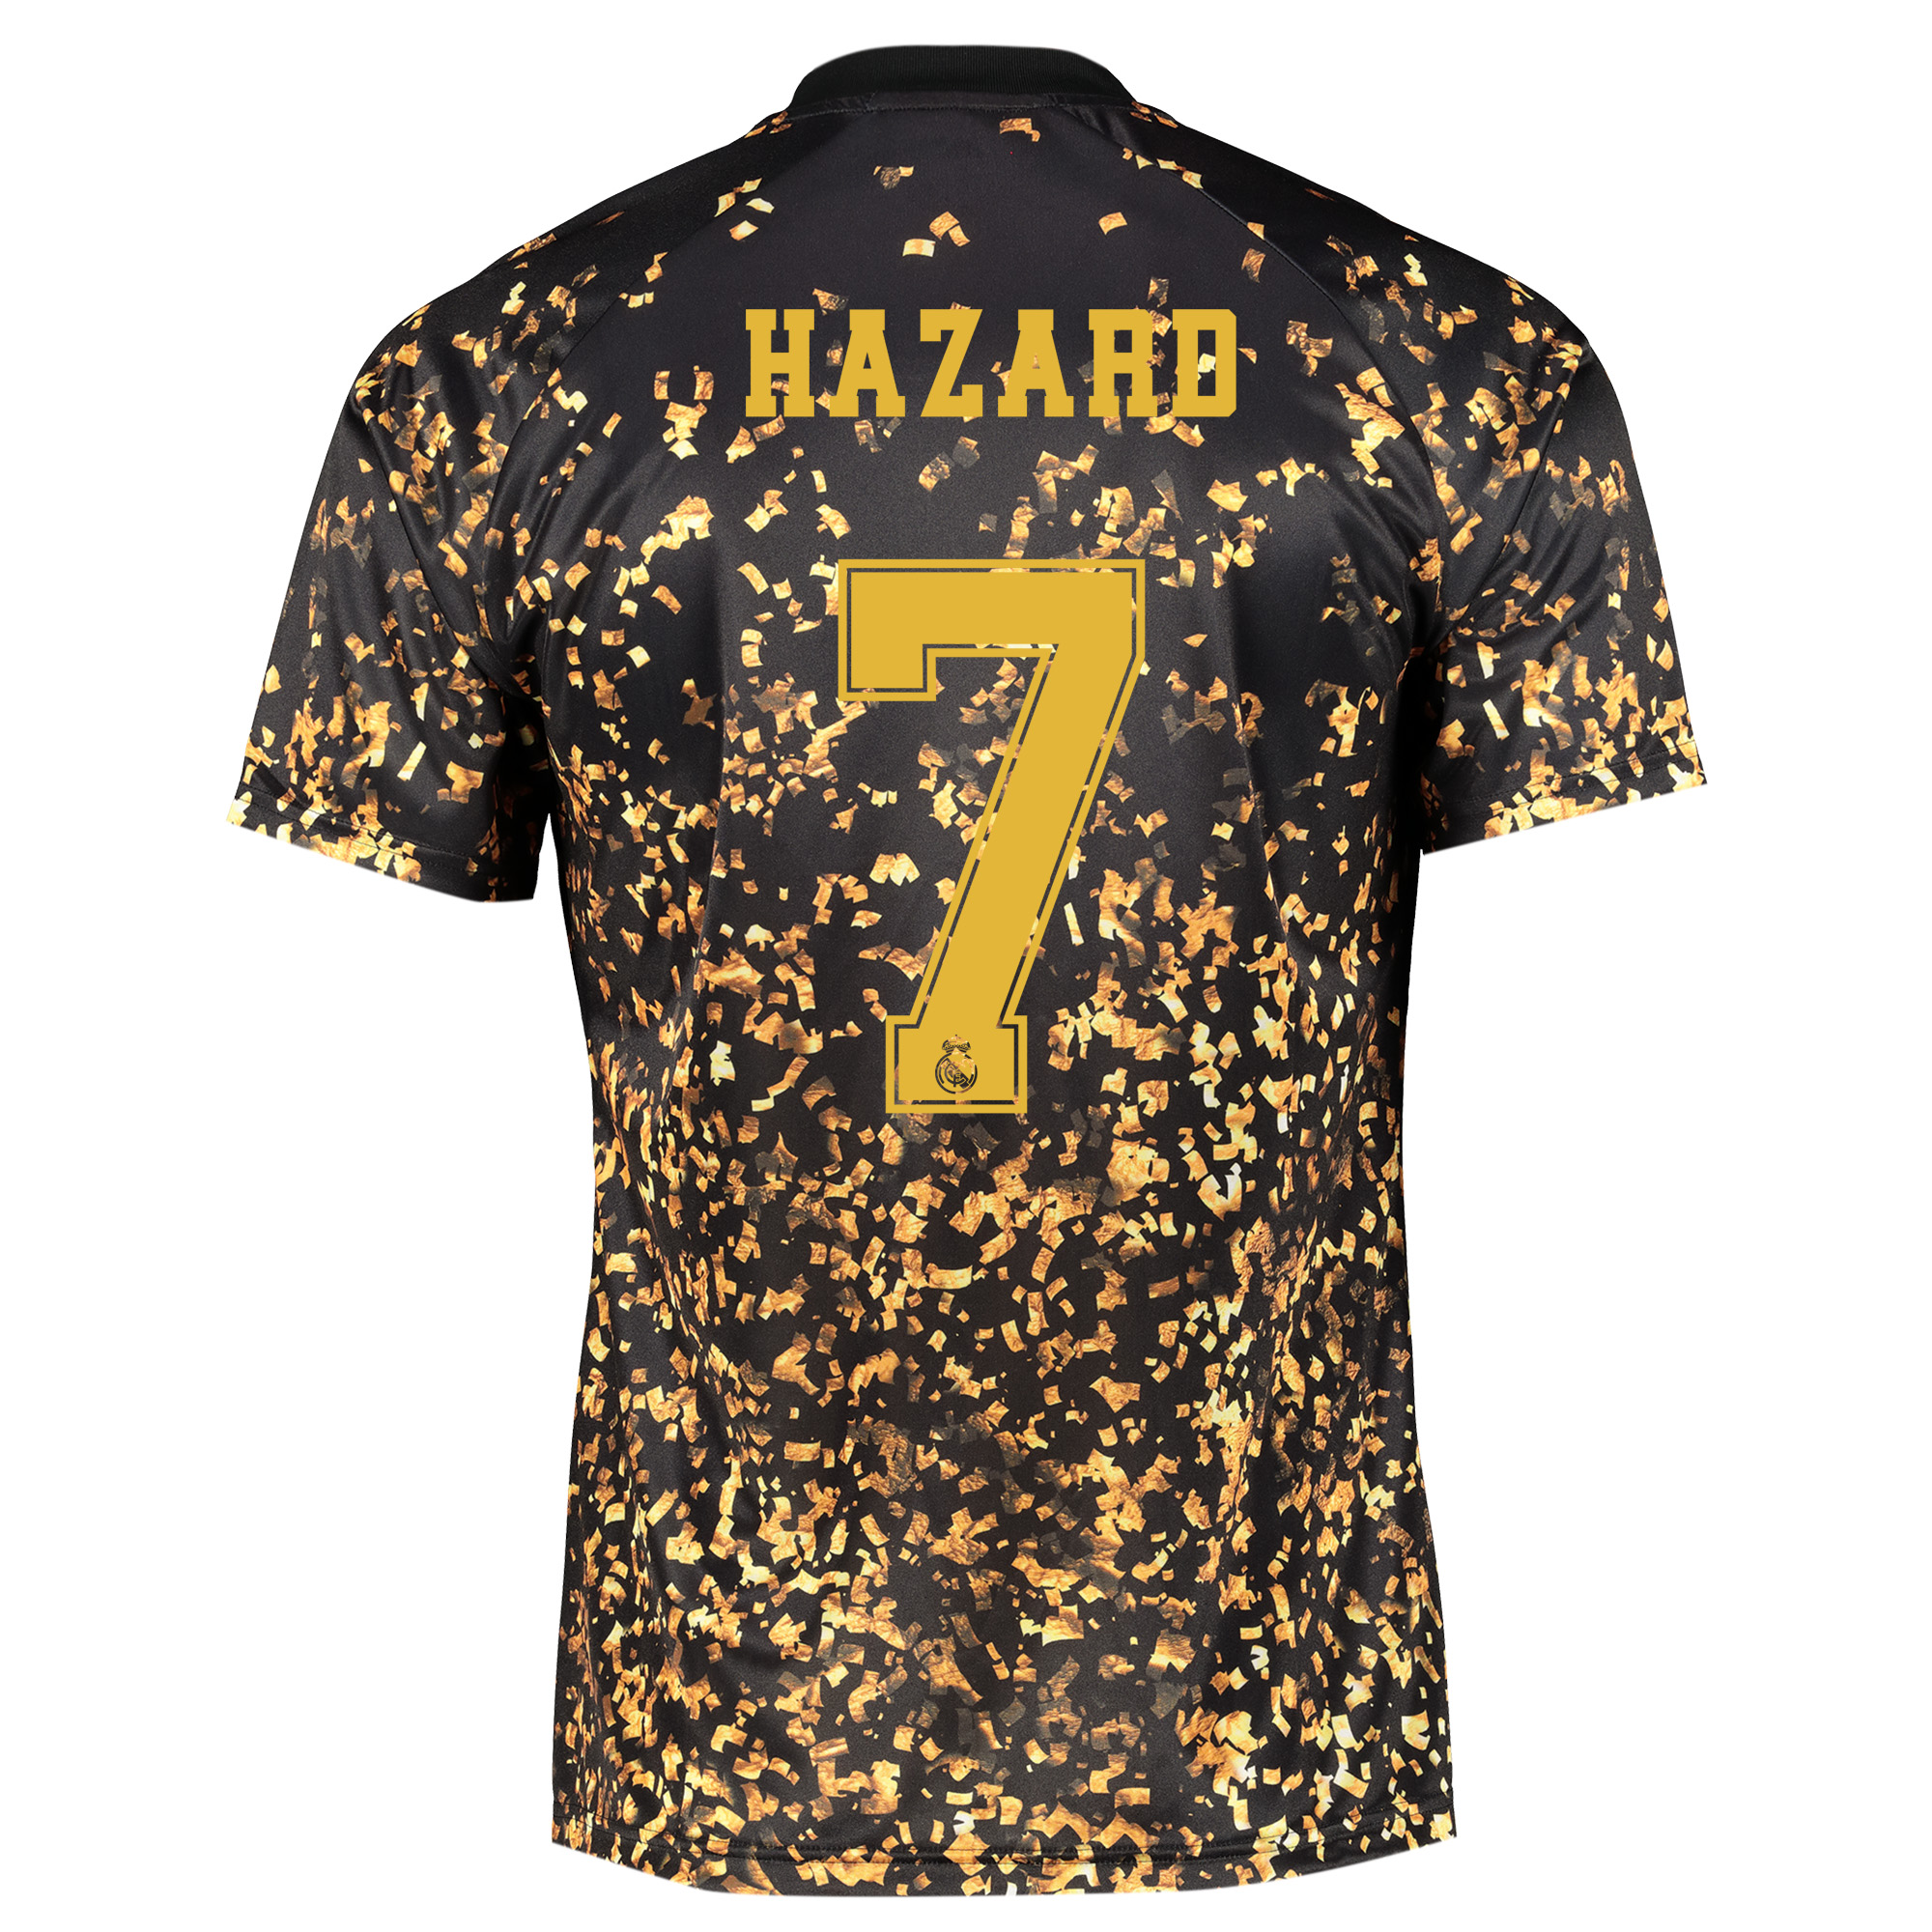 Camiseta adidas EA Sports del Real Madrid - Negro dorsal Hazard 7